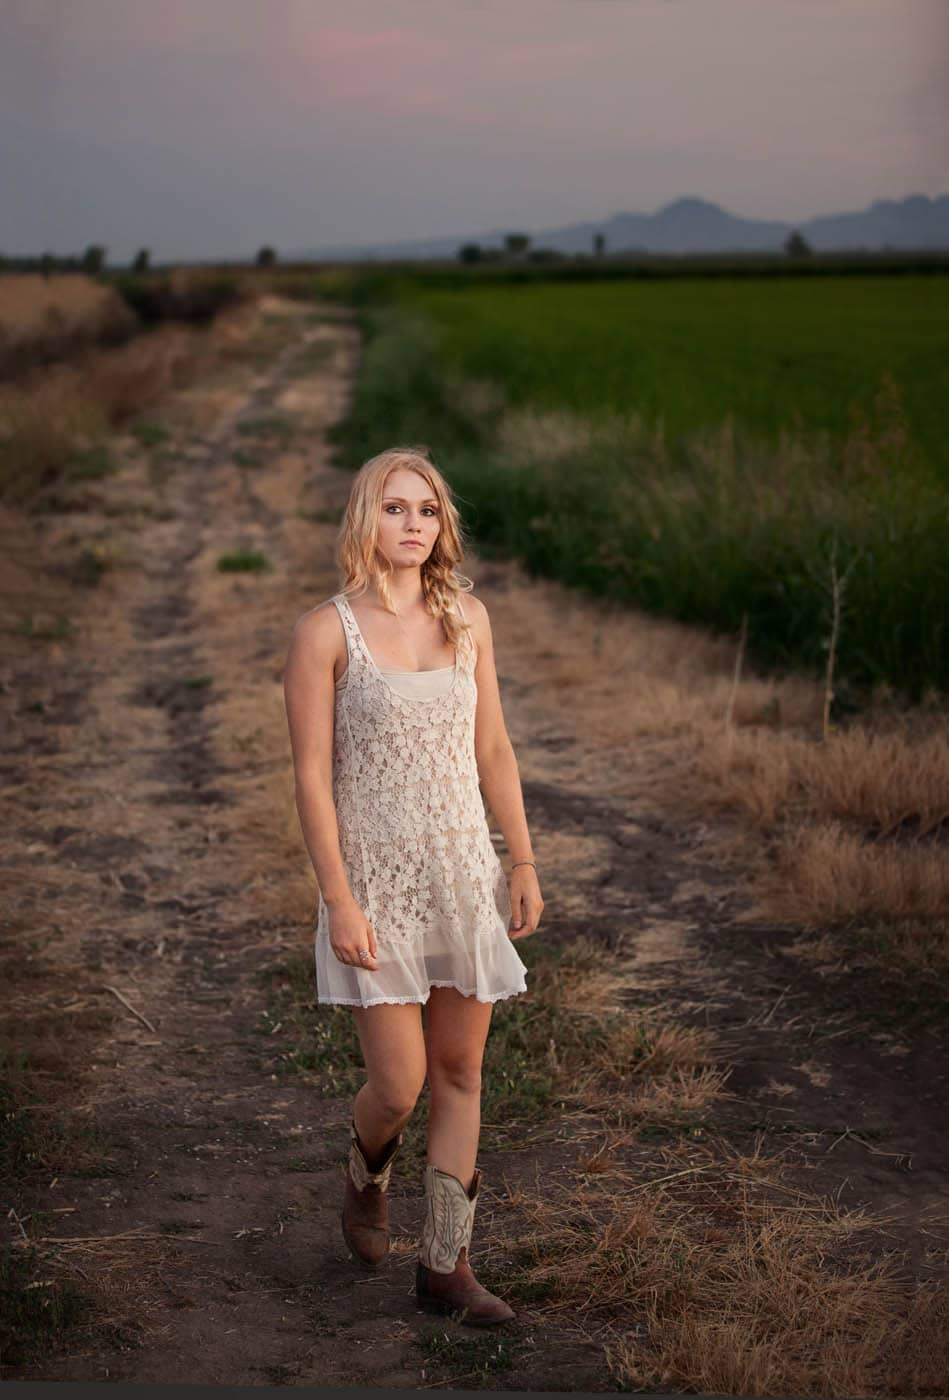 Country girls wearing a Free People Slip and cowboy boots walking through a field on a farm.